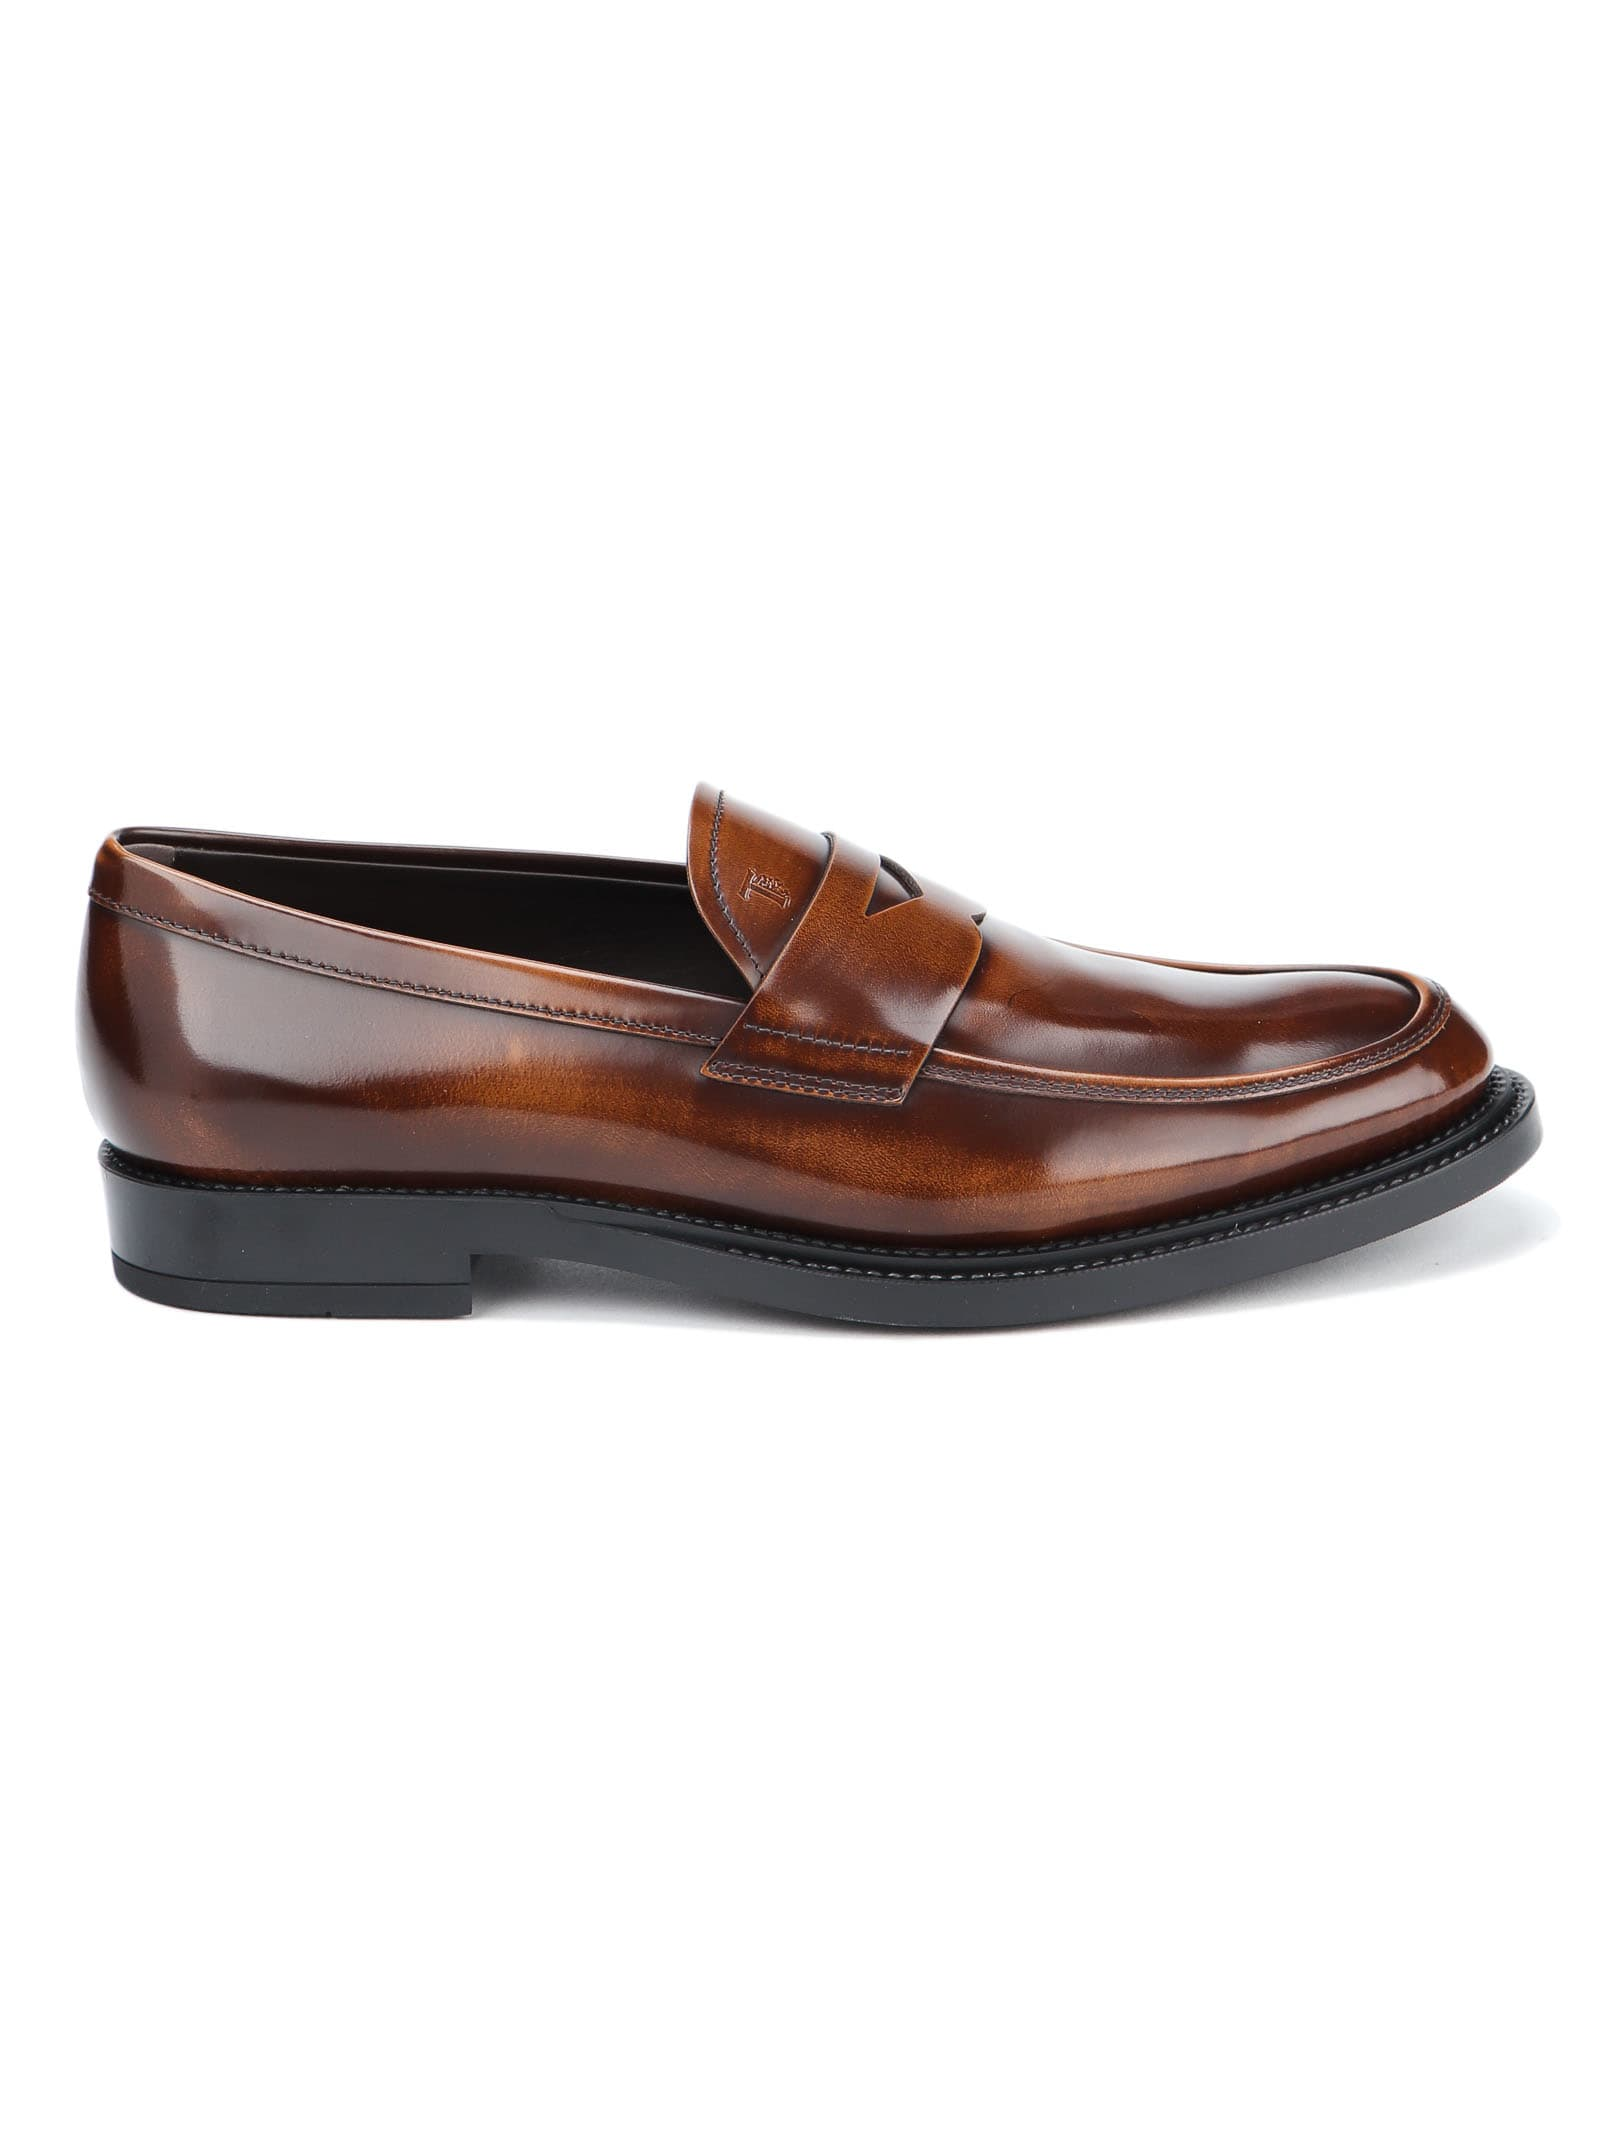 Tods Formal Loafer from TodsComposition: 100% Bos Taurus